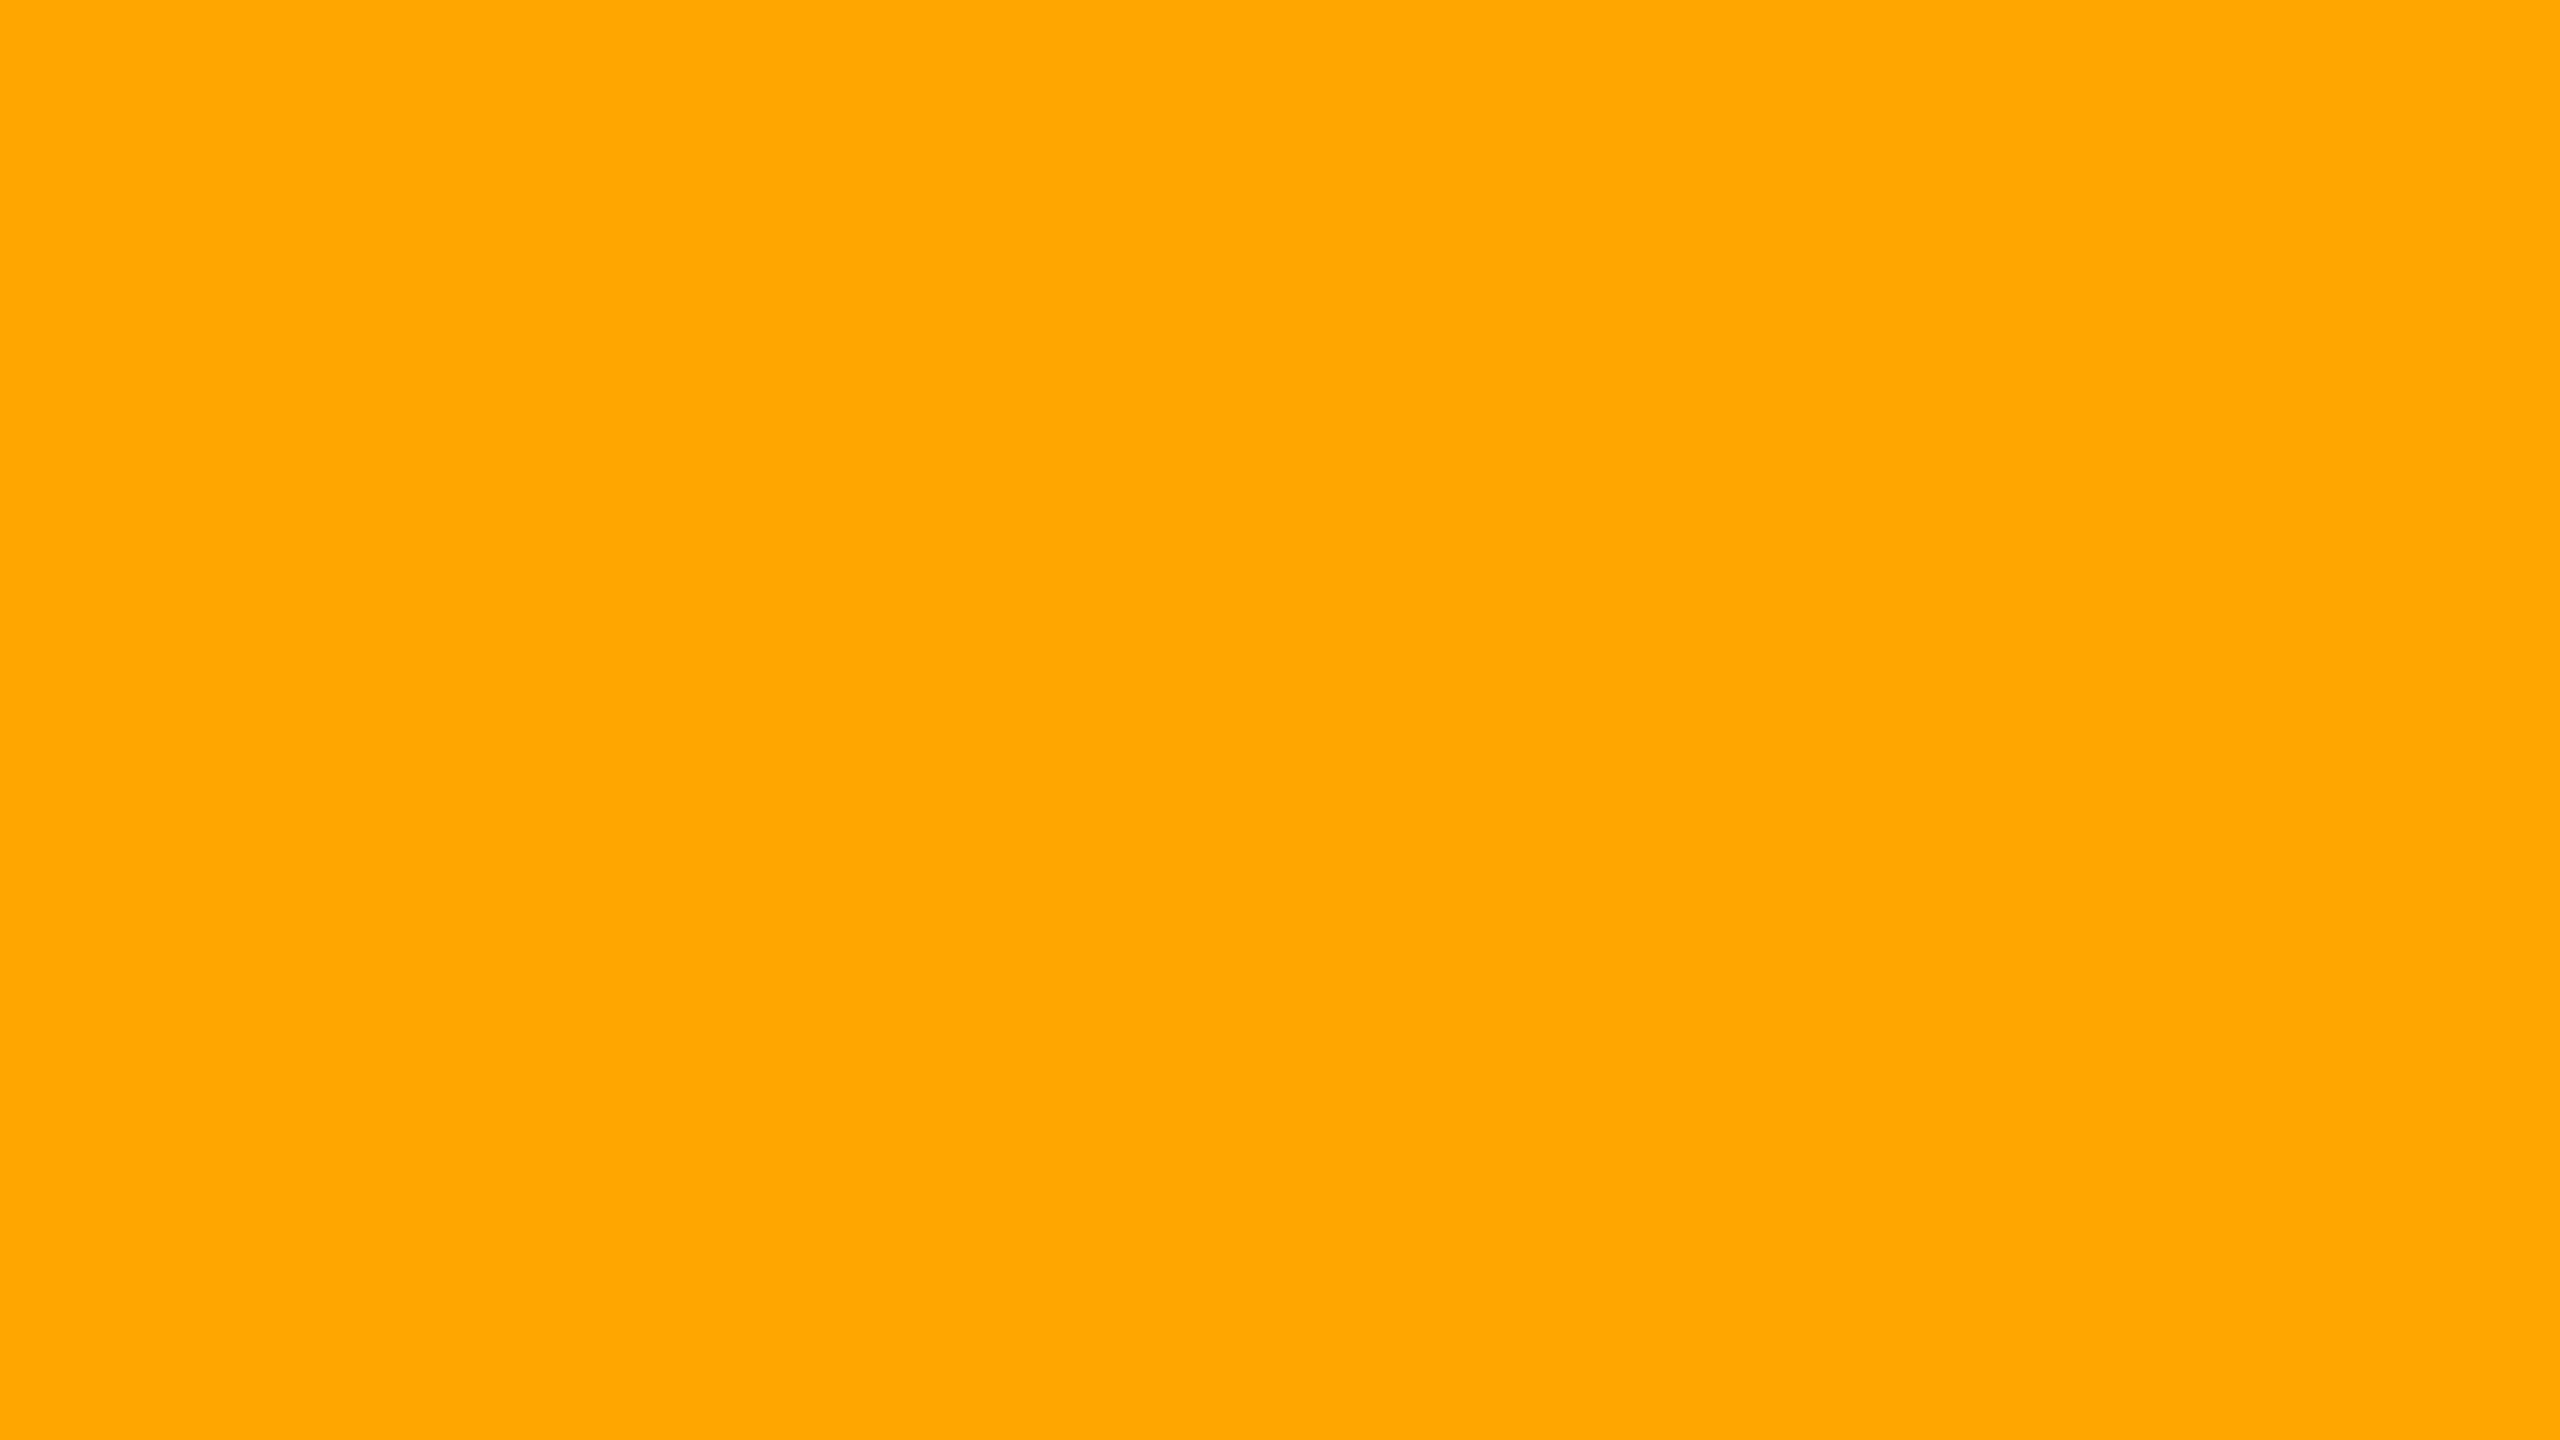 Free download 2560x1440 Chrome Yellow Solid Color ...